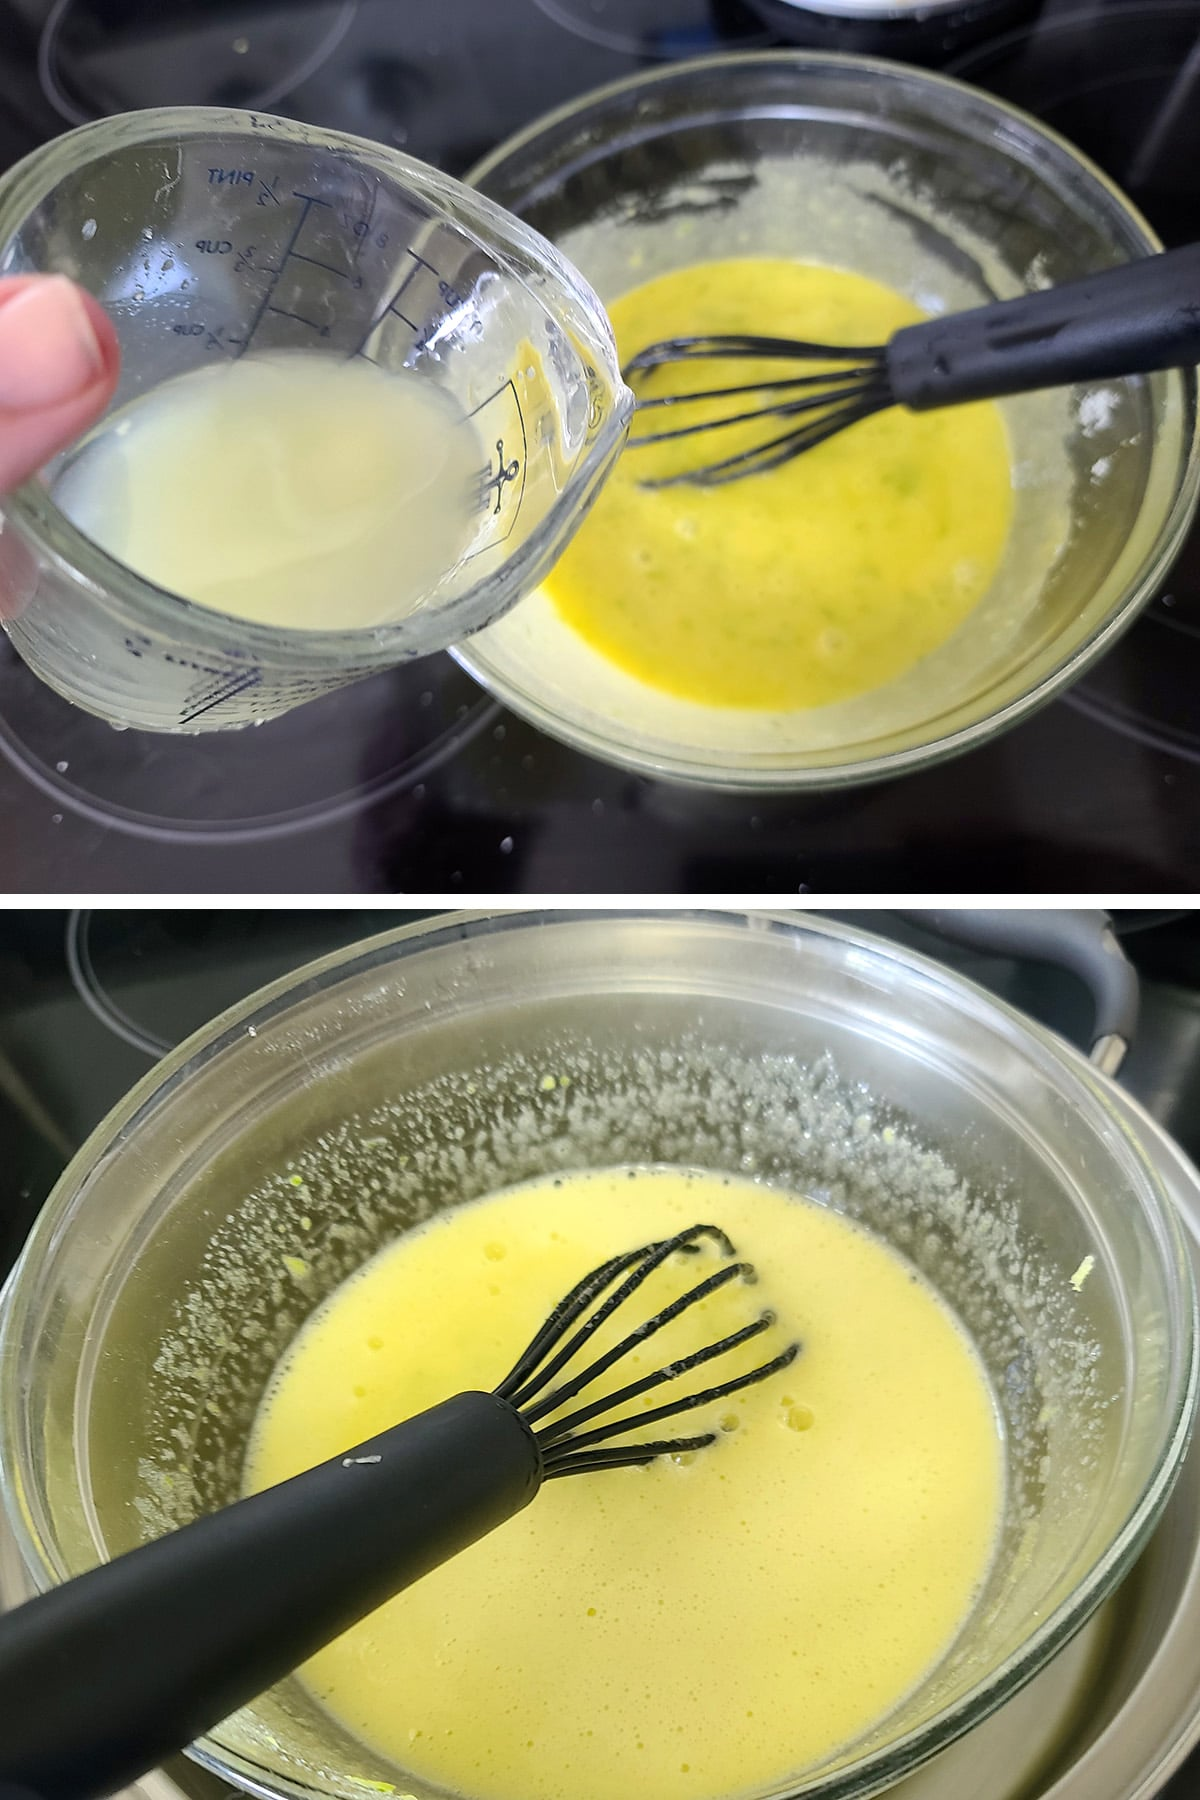 Lime juice being poured into the bowl of sugar and egg yolks.